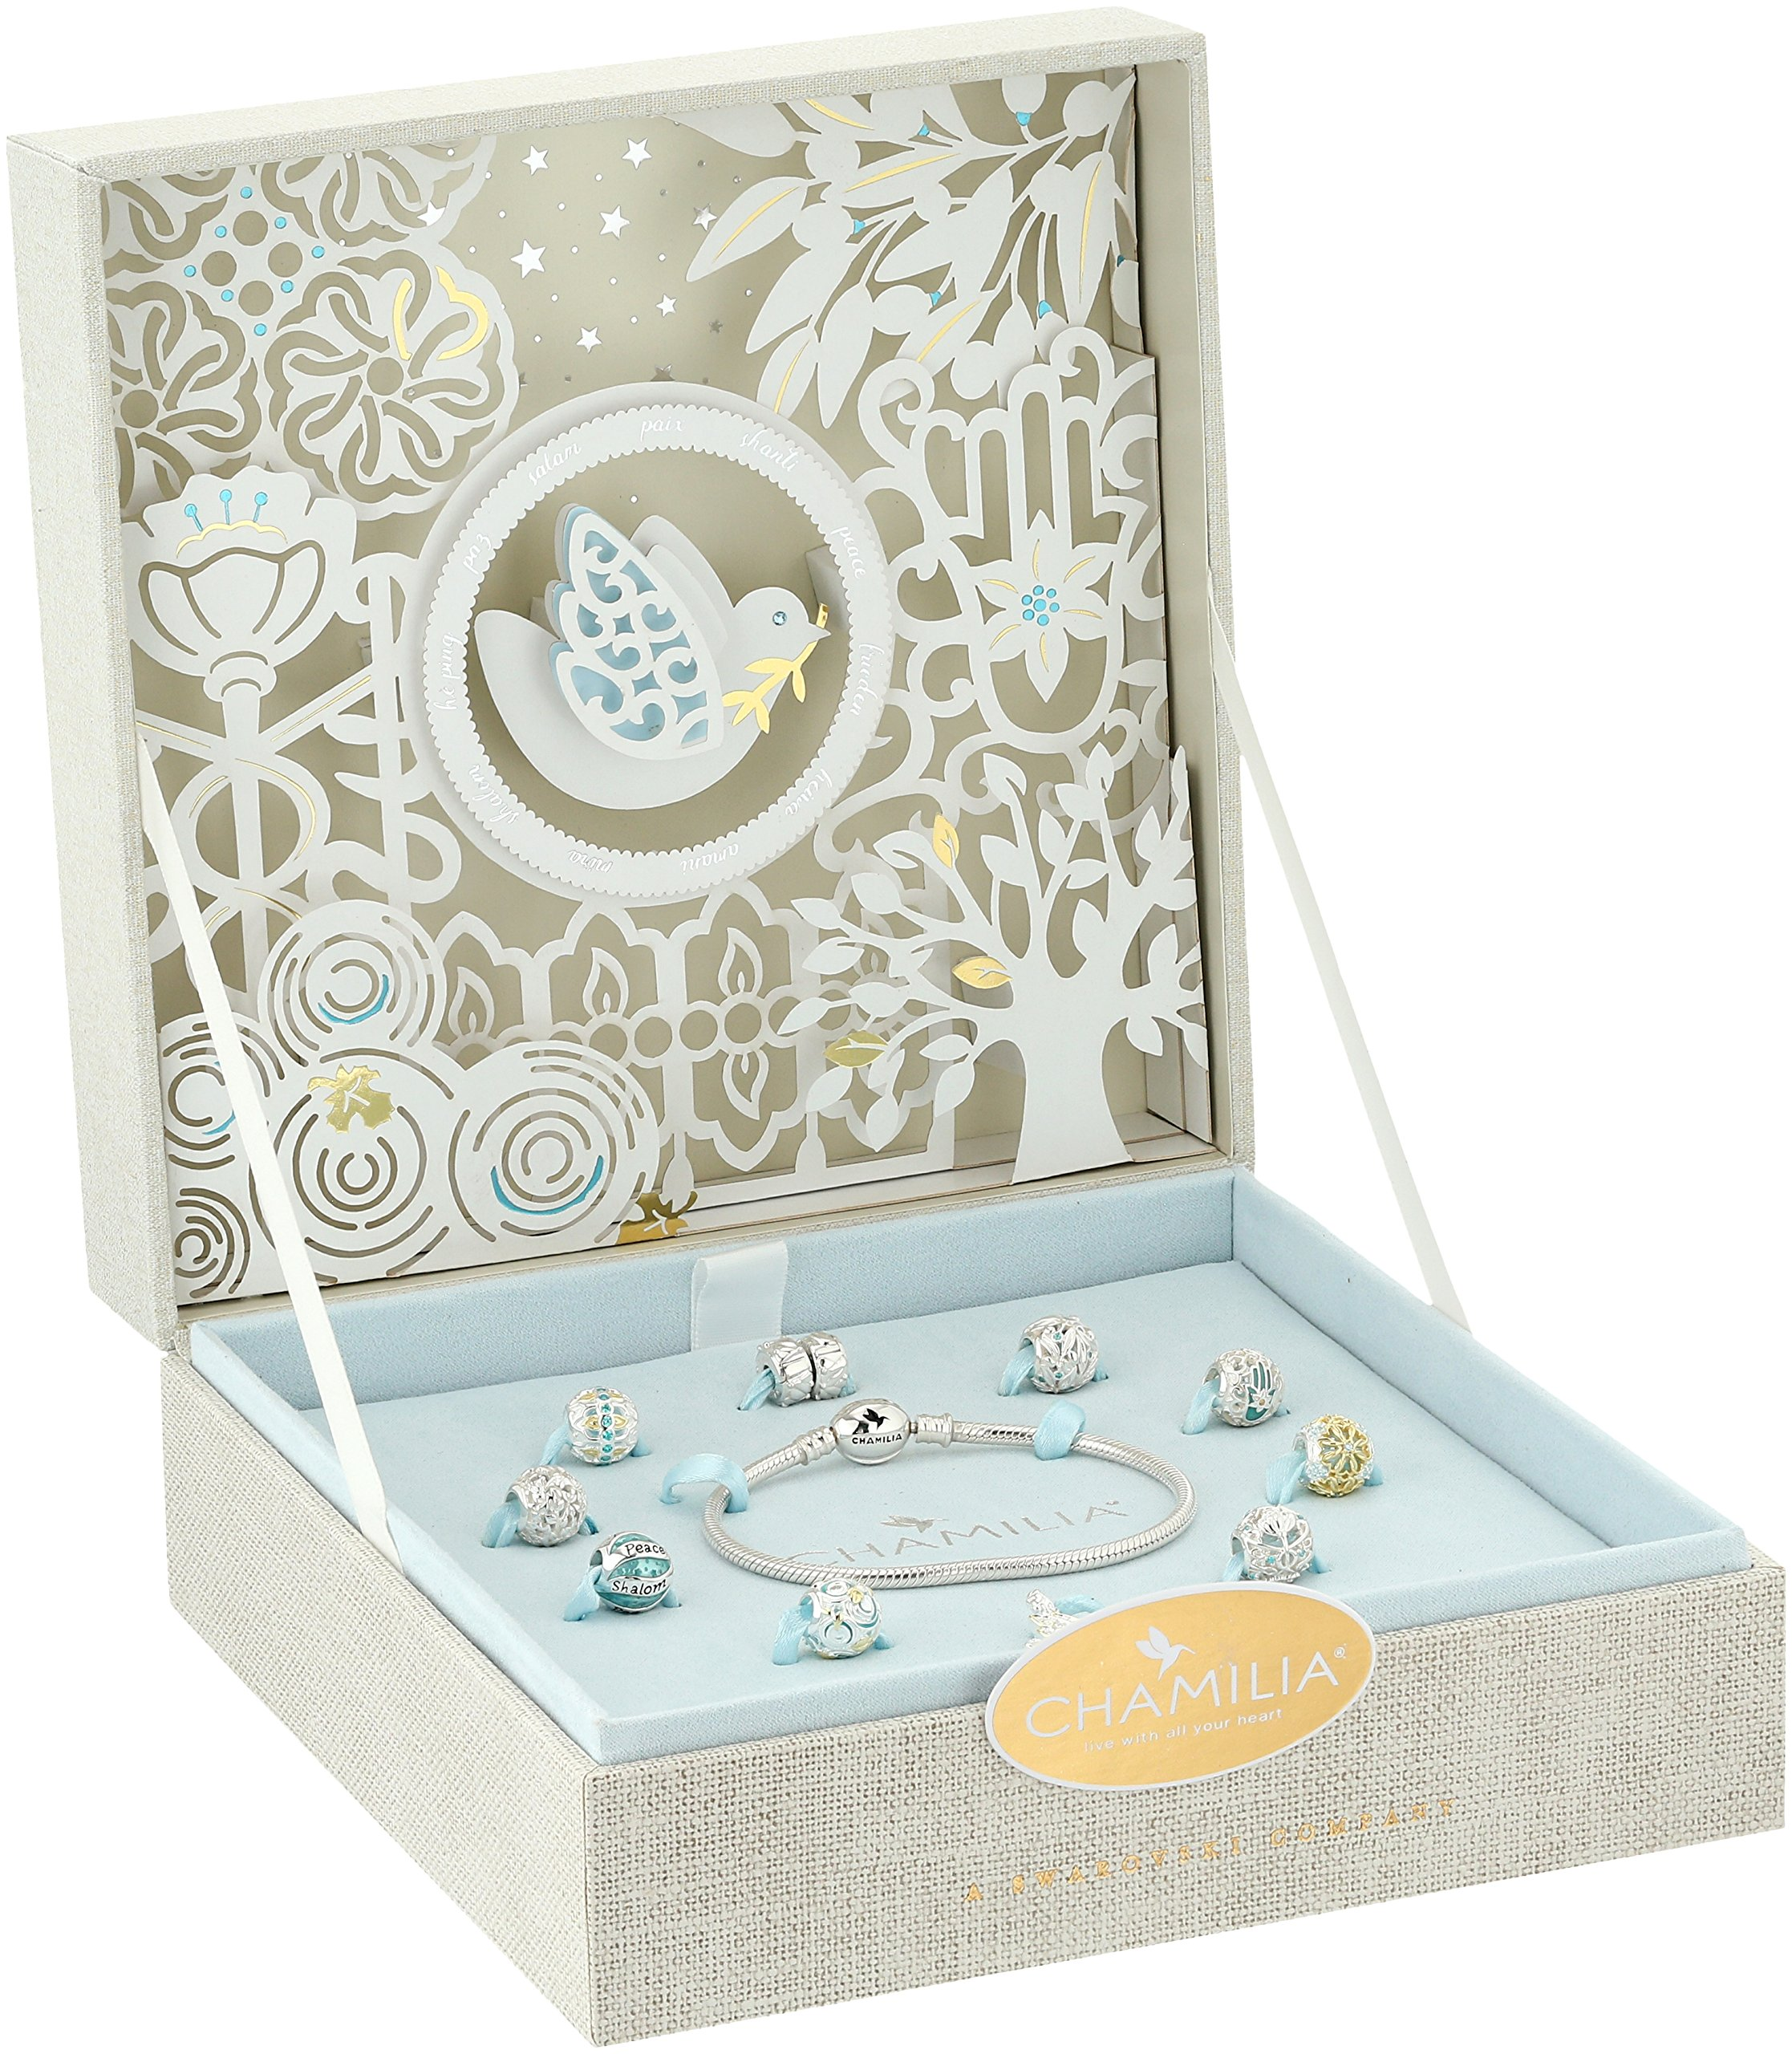 Chamilia 2017 Limited Edition Peace On Earth Gift Set - Mint Swarovski Zirconia And Gold Electroplating Jewelry Set